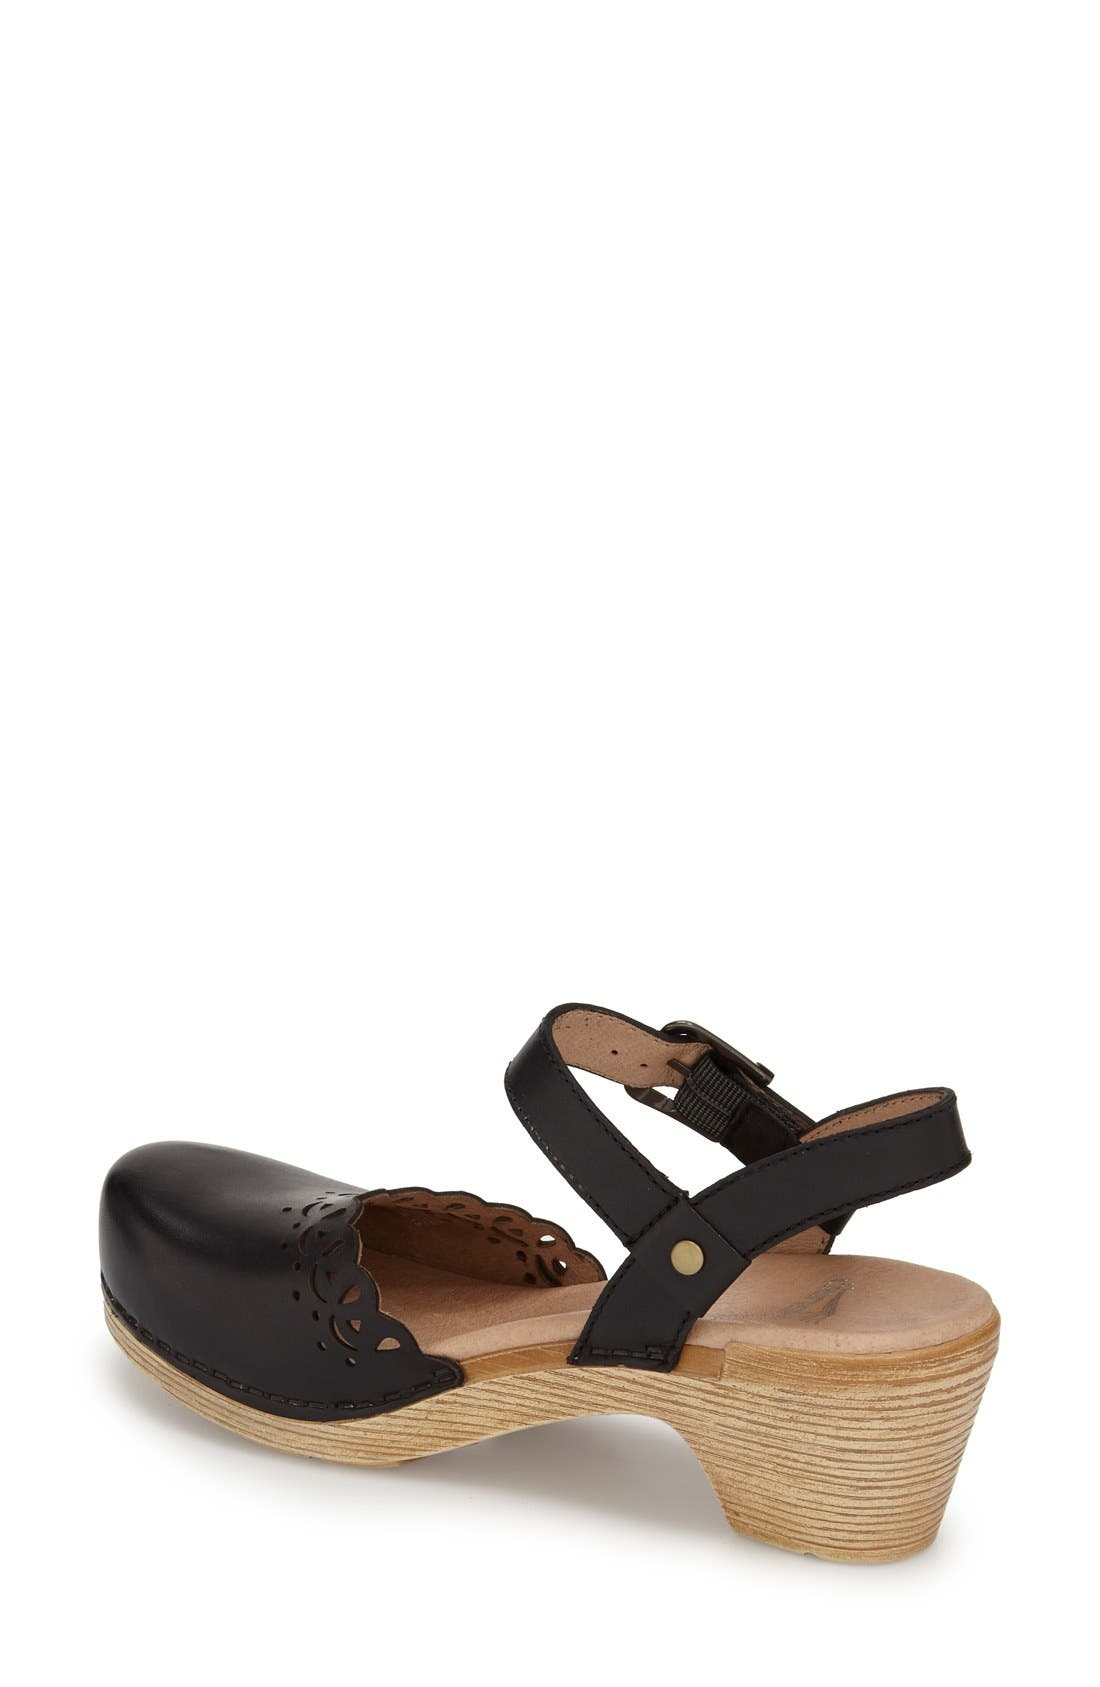 'Marta' Ankle Strap Clog,                             Alternate thumbnail 2, color,                             001